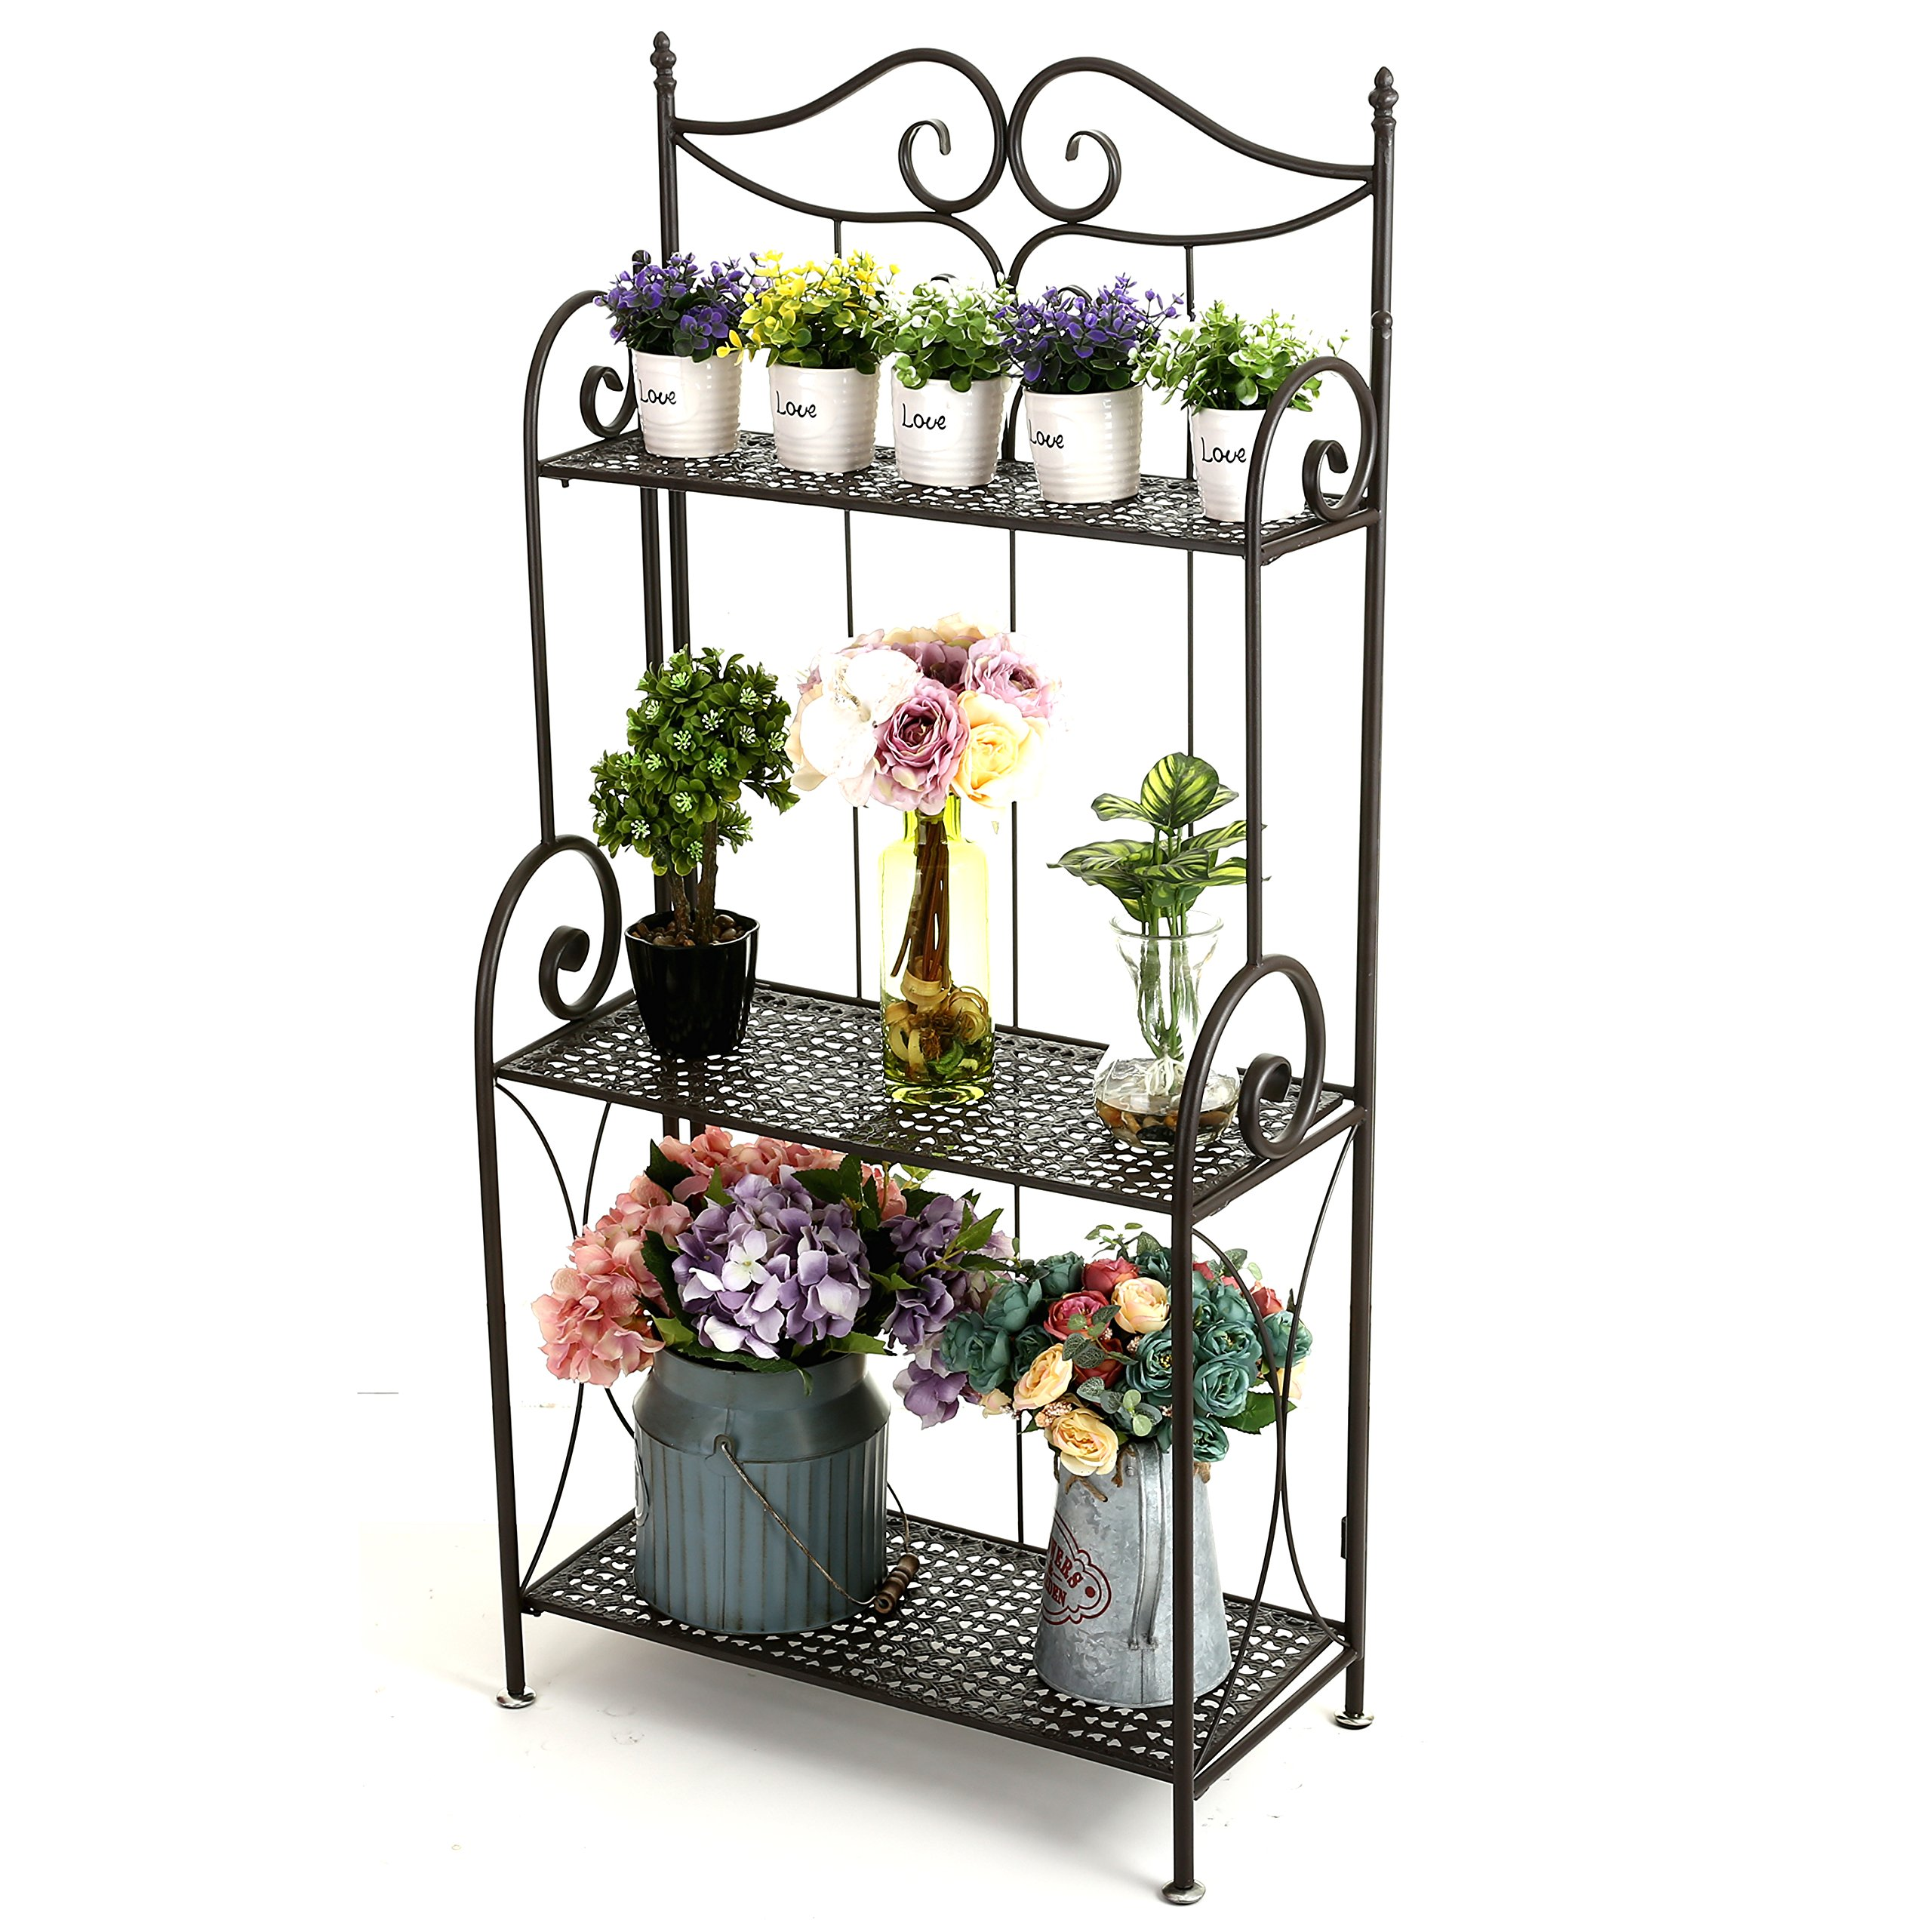 Scrollwork Design Metal Foldable 3-Tier Plant & Home Décor Display Stand Rack / Book Shelf by MyGift